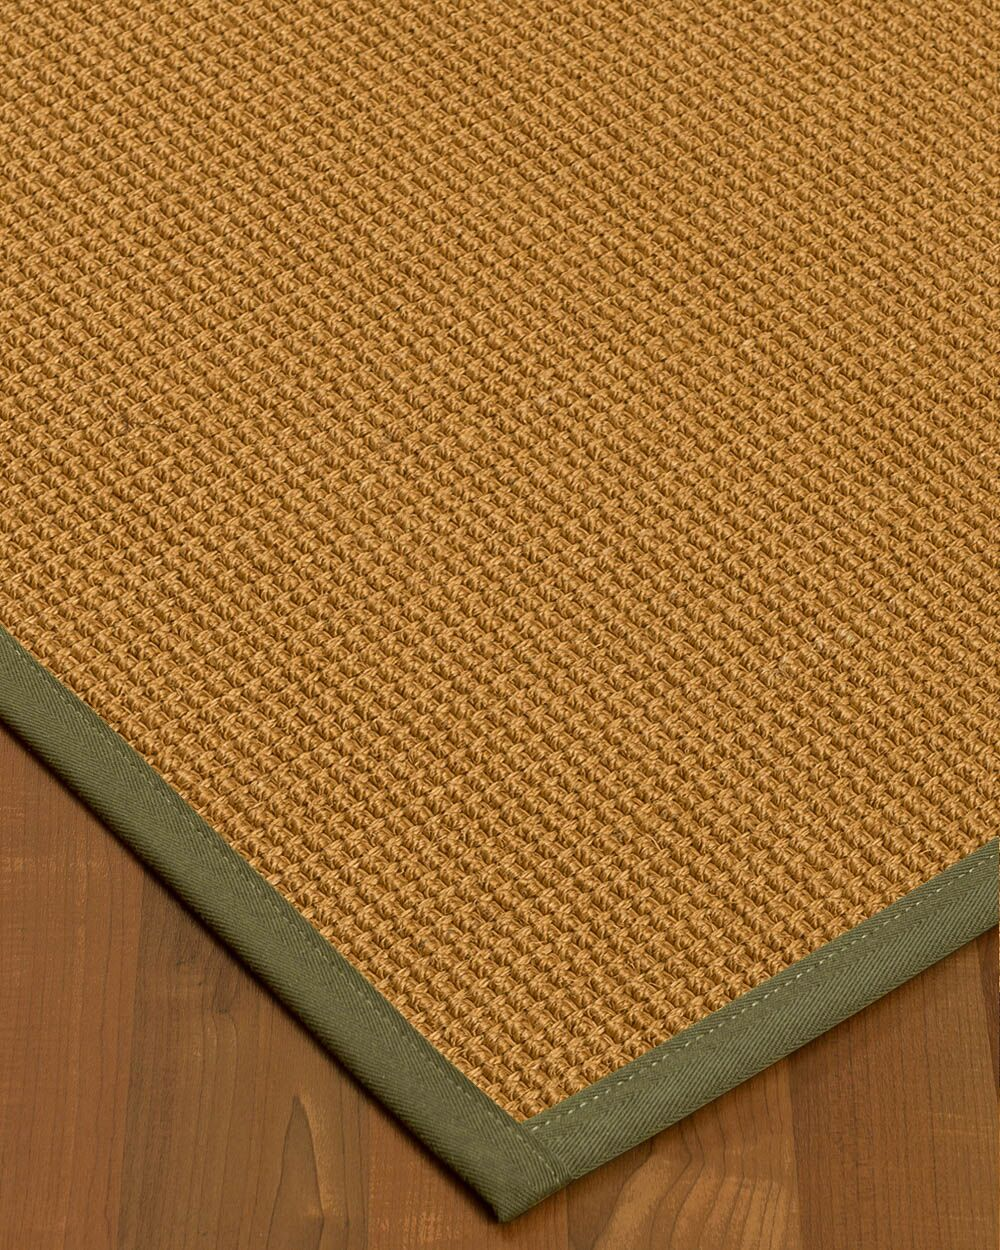 Aula Border Hand-Woven Brown/Fossil Area Rug Rug Size: Rectangle 6' x 9', Rug Pad Included: Yes